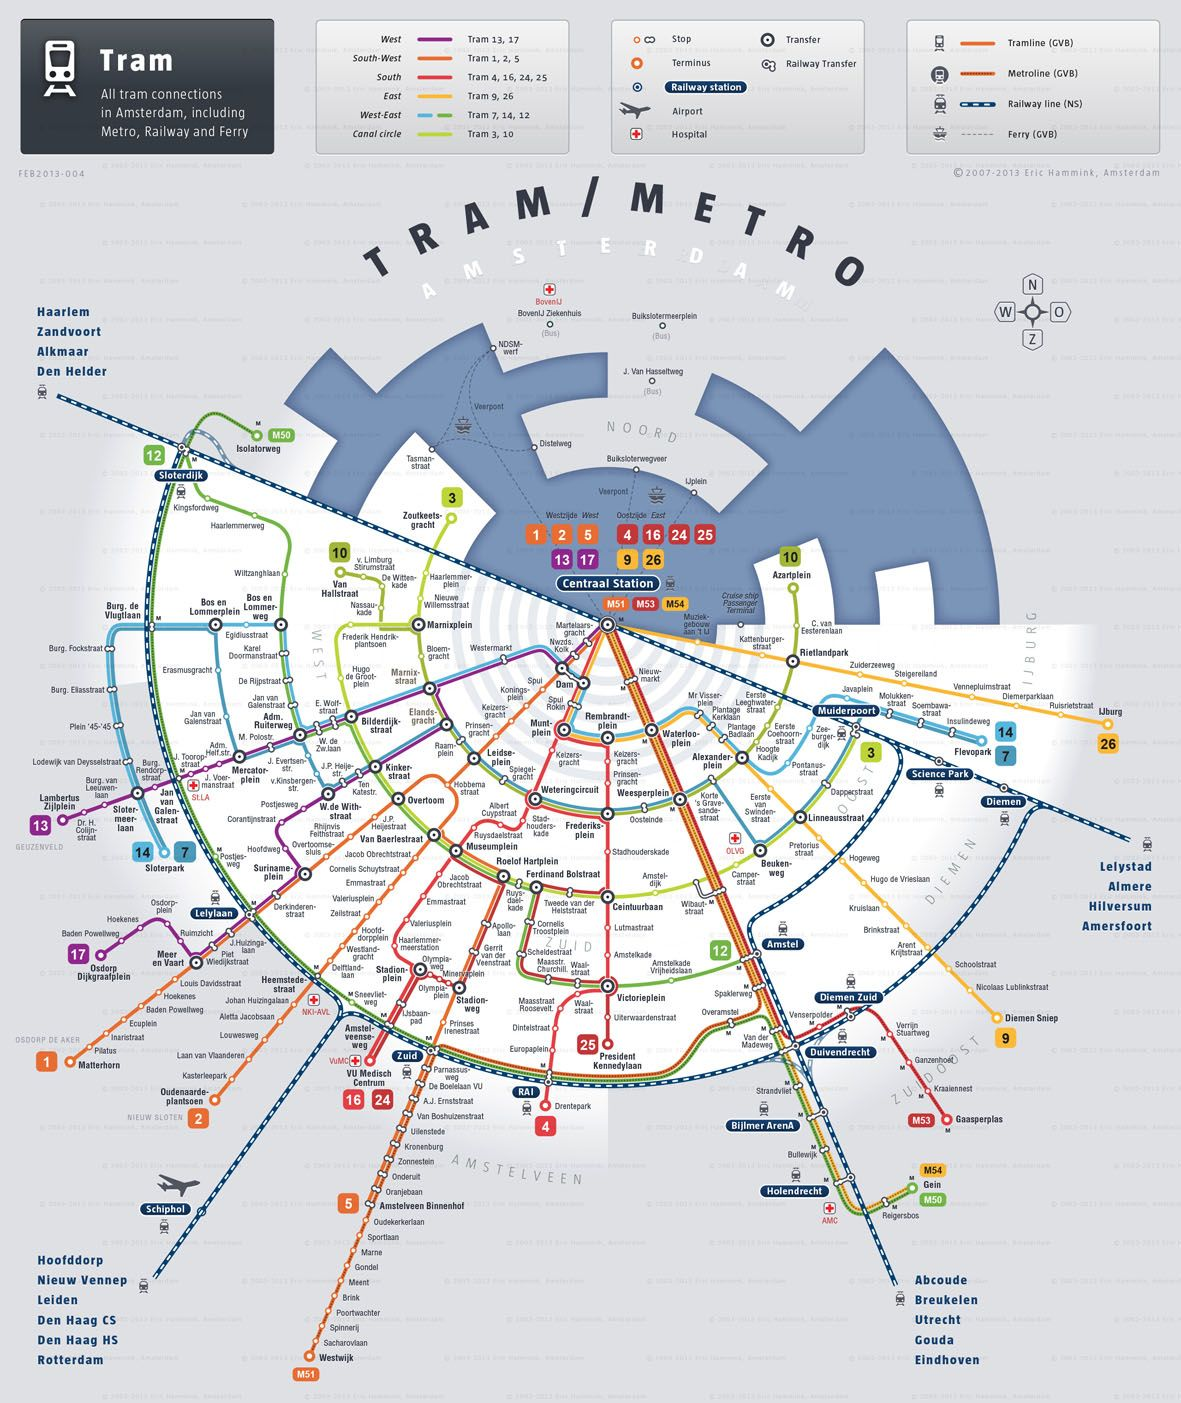 Pin By Paul Hollis On Next Station Pinterest Train Map Map